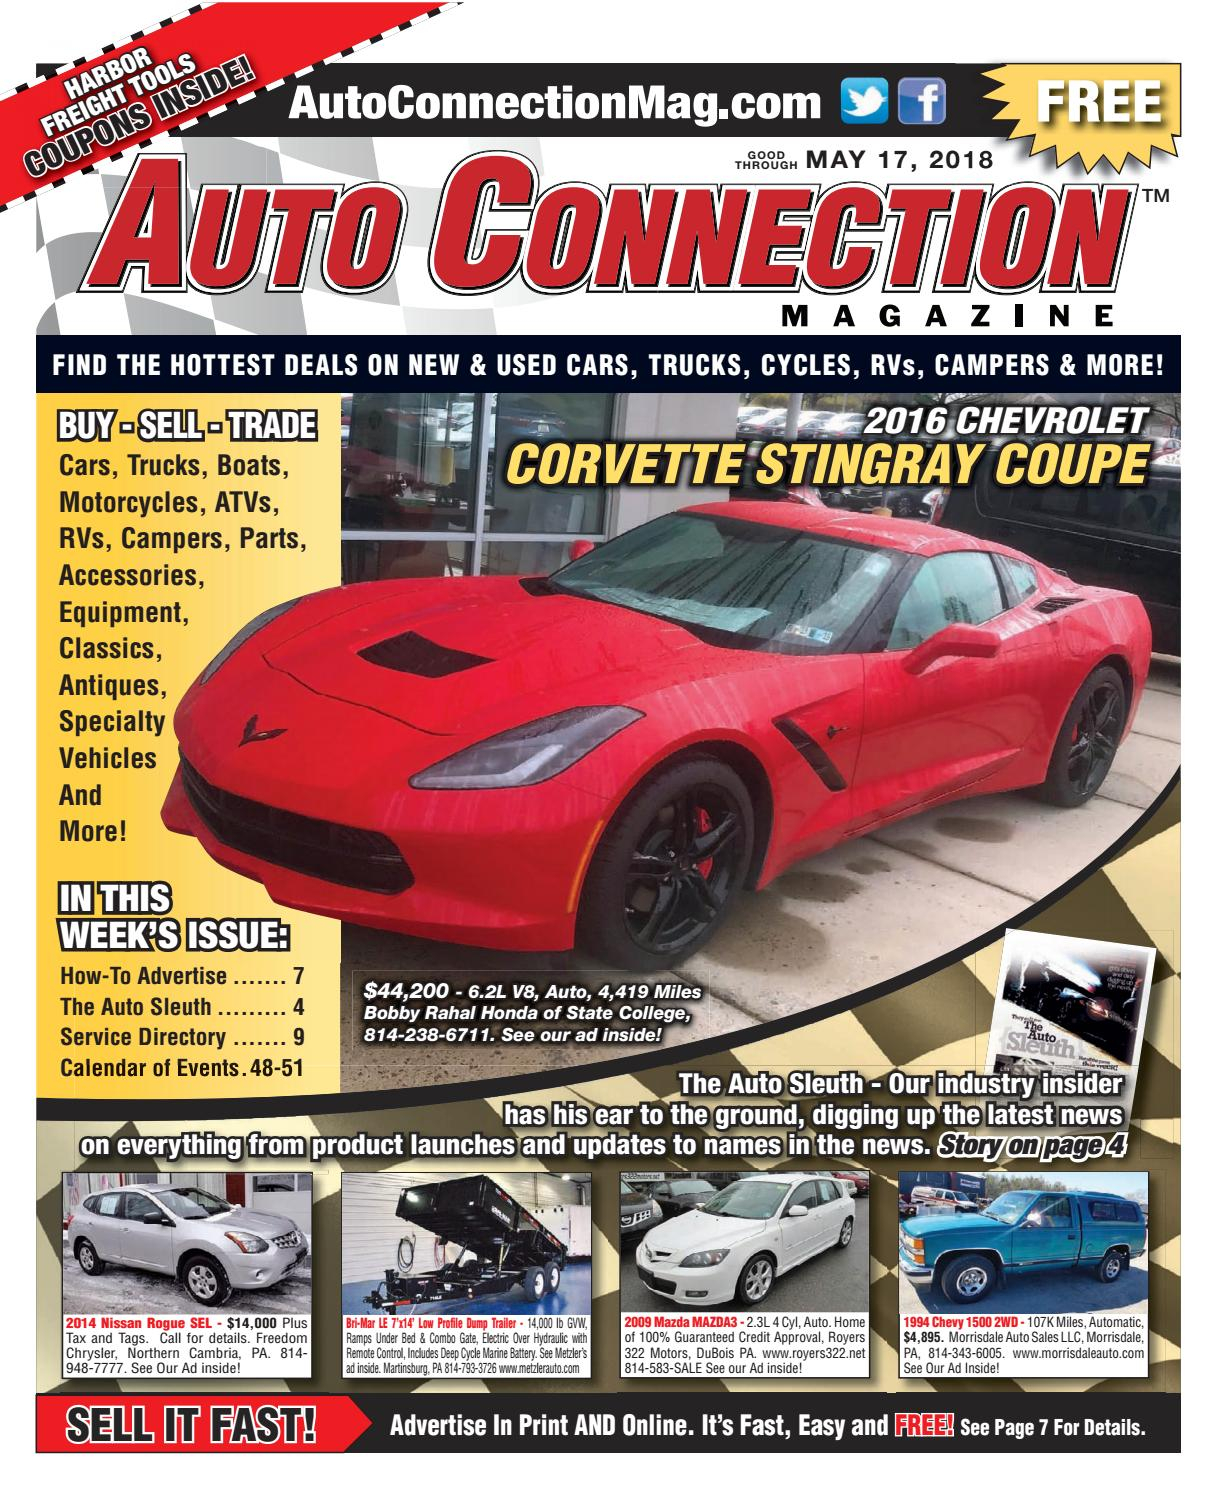 05-17-18 Auto Connection Magazineauto Connection